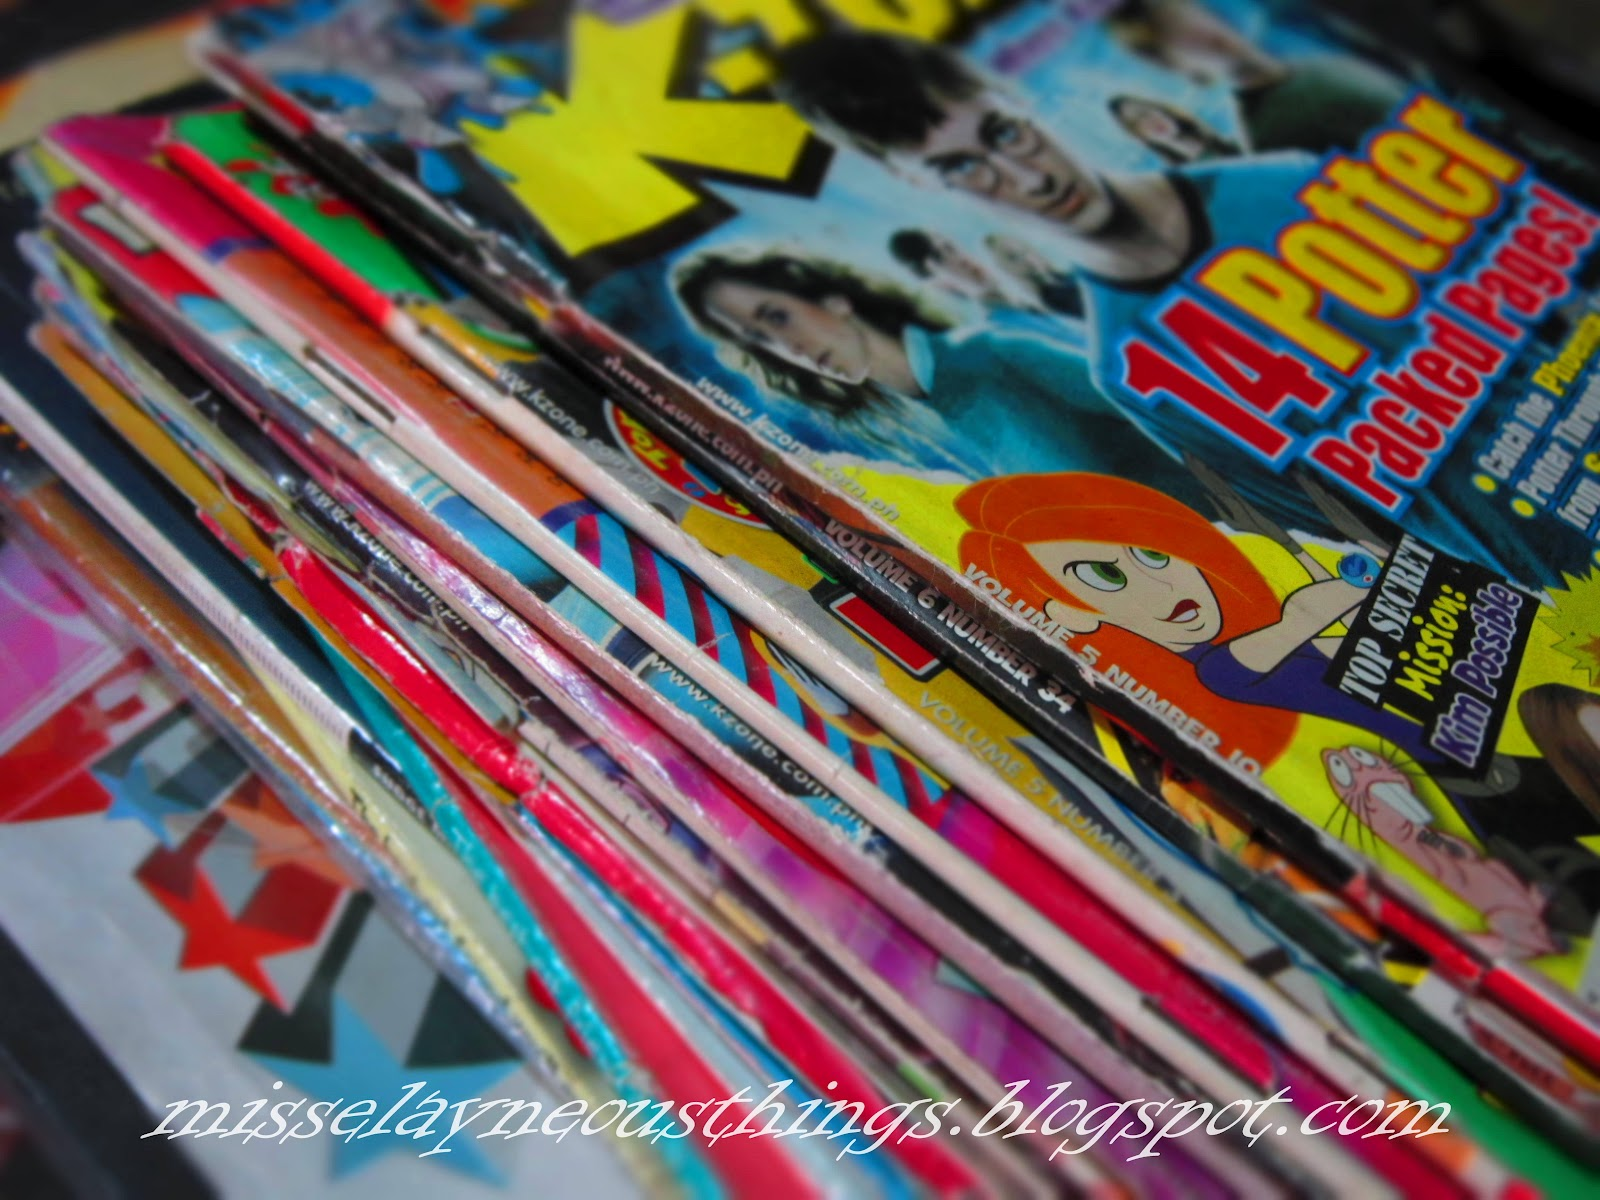 How to scrapbook magazines - I Just Cut Out Some Pages Which Goes With My Scrapbook Theme And I Just Paste It On The Manila Paper I Think They Really Blended Well With My Scraps And